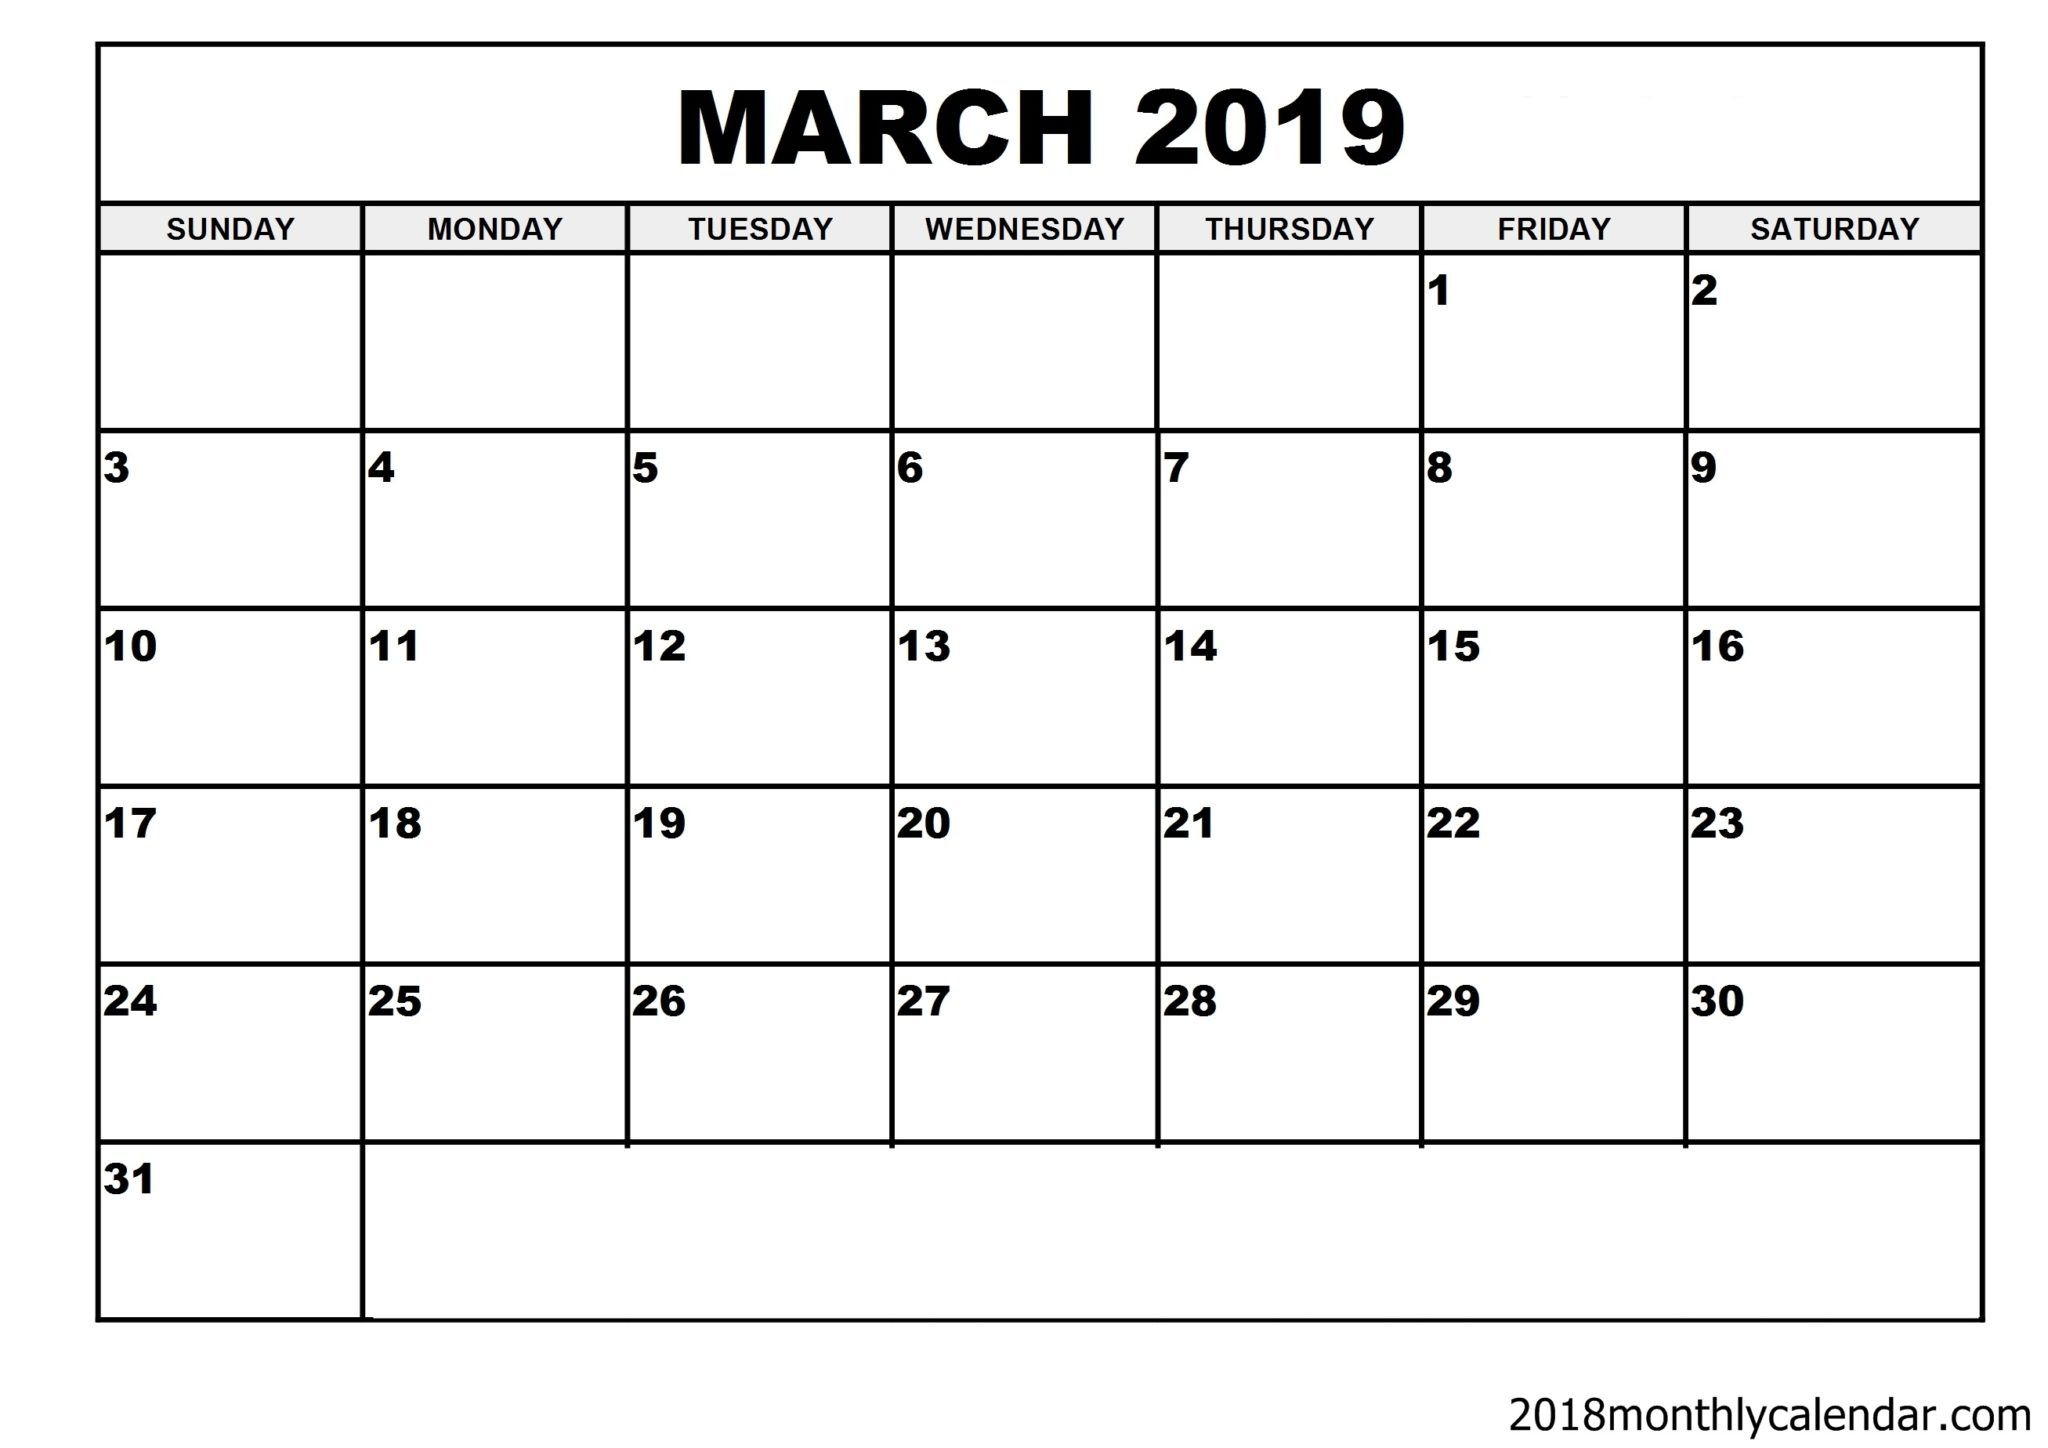 Download March 2019 Calendar – Blank Template - Editable Calendar in Free Downloadable Monthly Calendar Templates